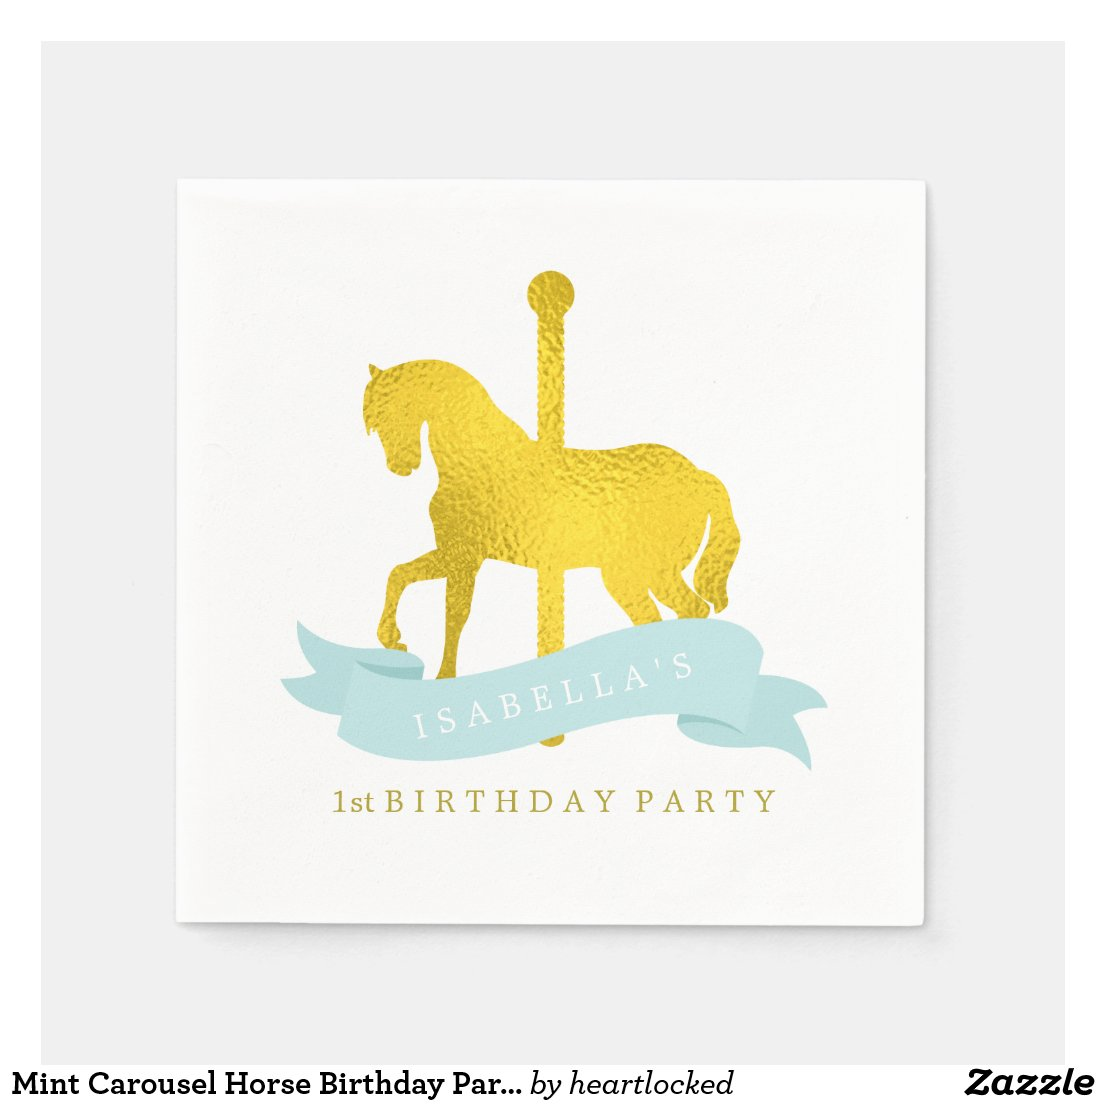 Mint Carousel Horse Birthday Party Paper Napkin